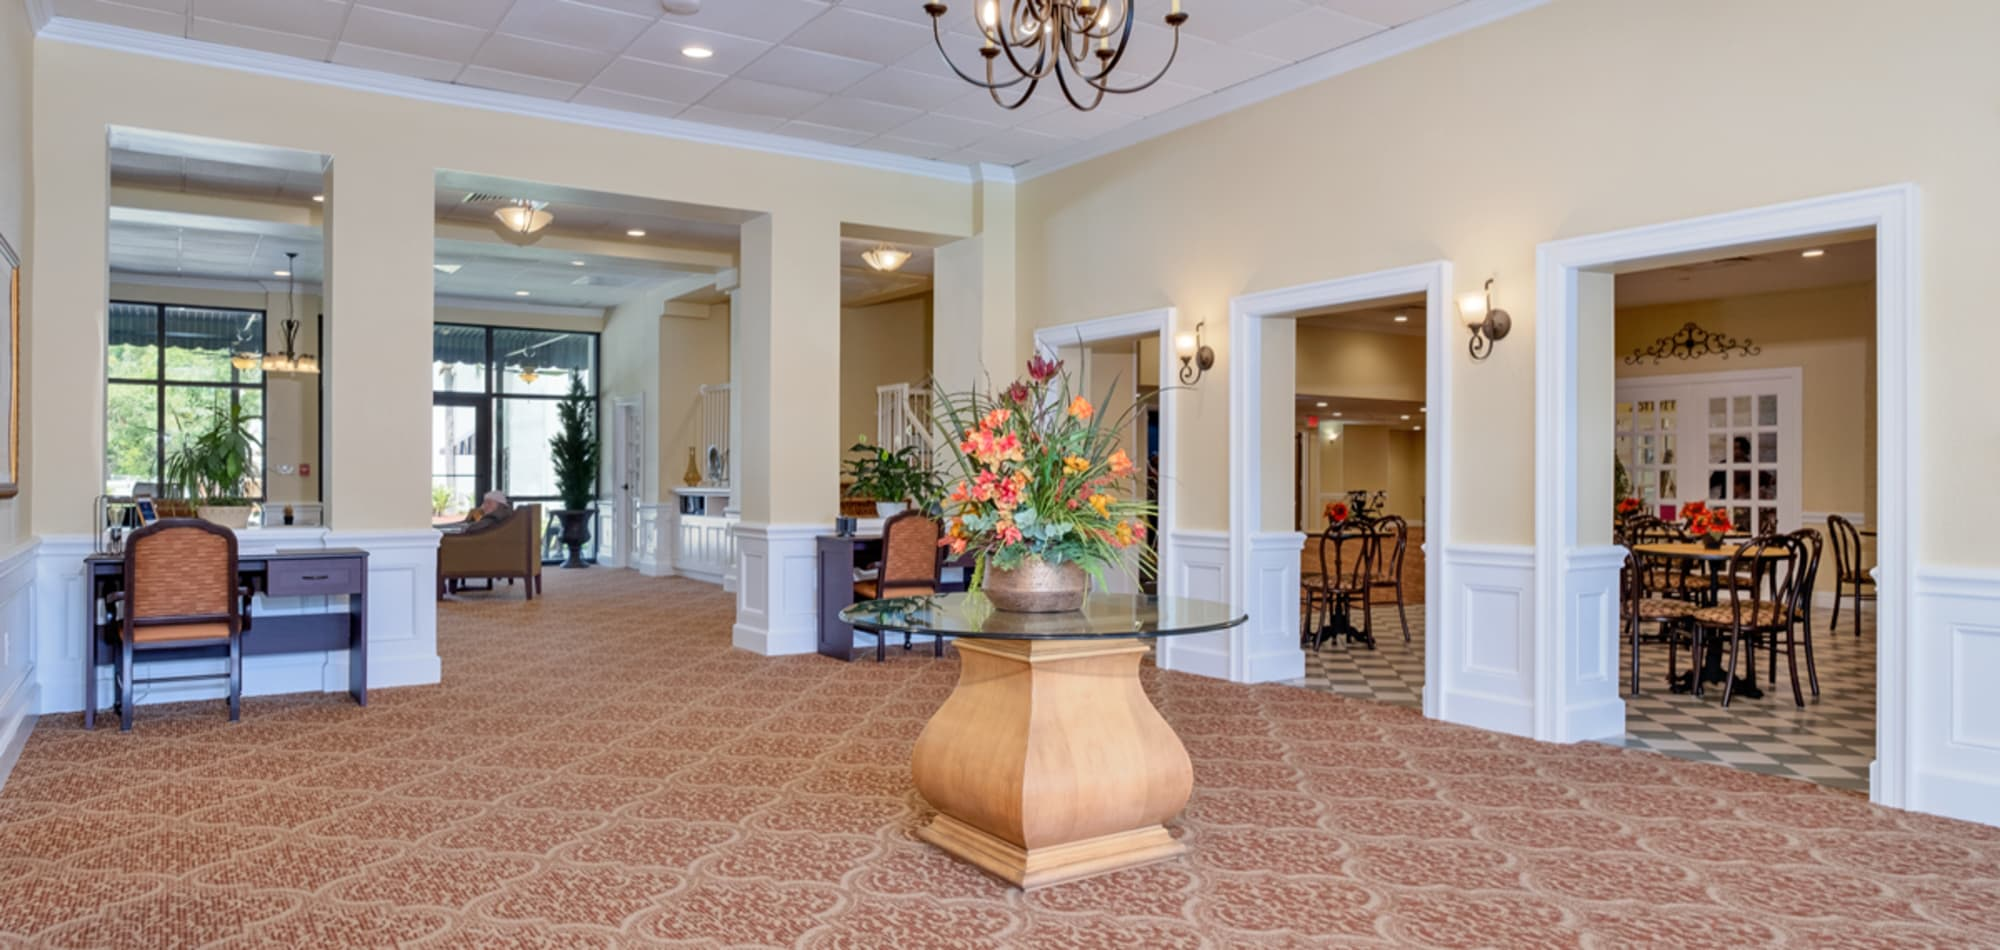 Grand Villa of Boynton Beach senior living in Florida